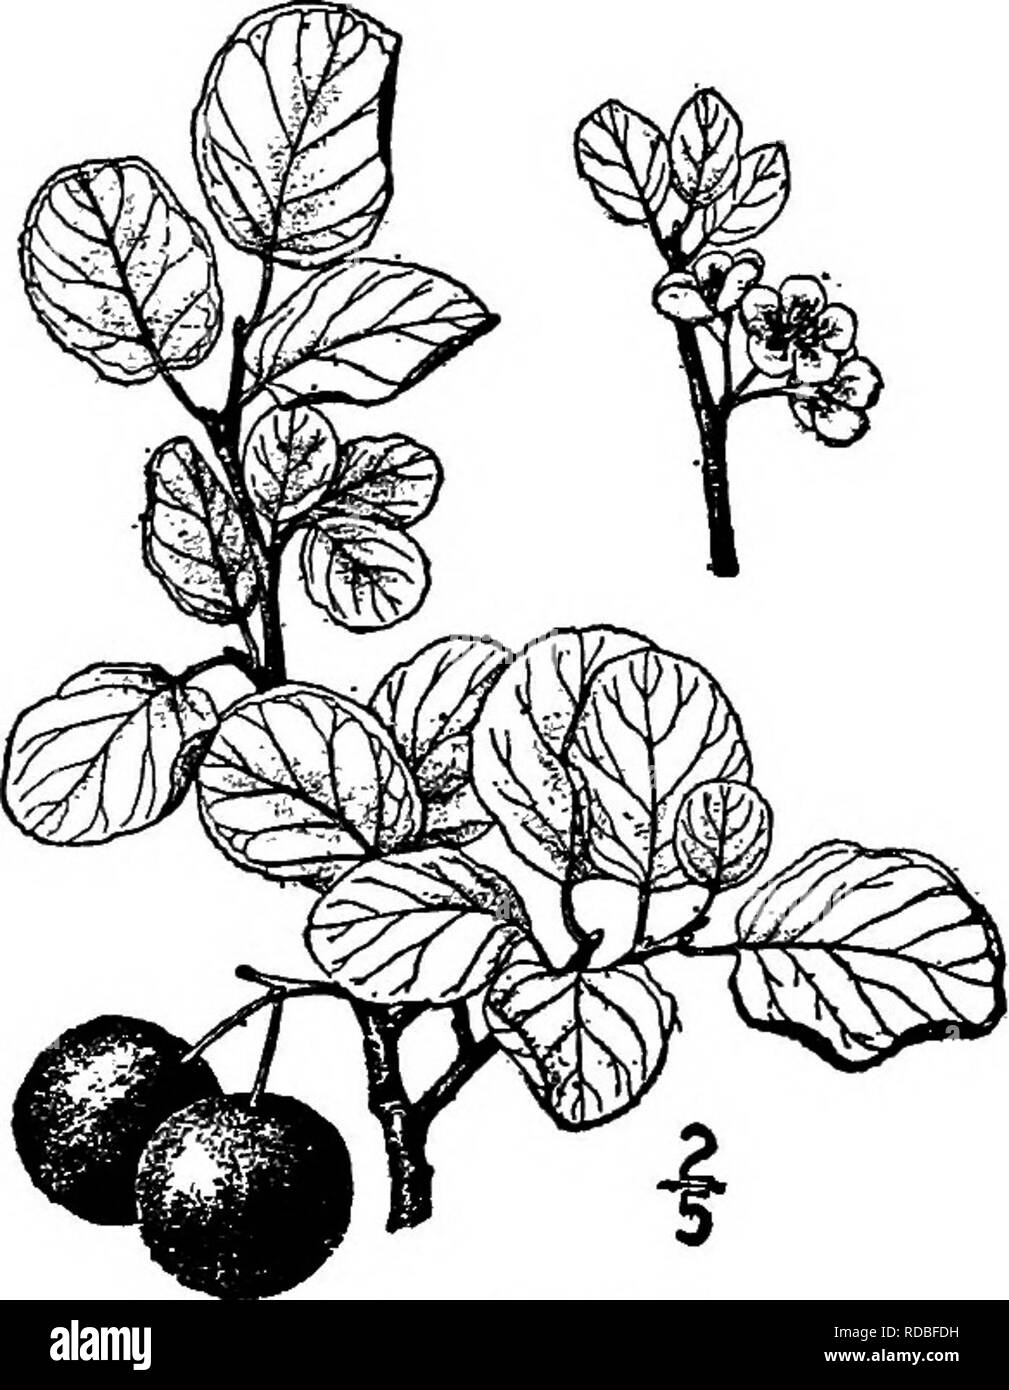 . North American trees : being descriptions and illustrations of the trees growing independently of cultivation in North America, north of Mexico and the West Indies . Trees. 492 The Plums and Cherries The Woolly-leaf plum is a variety of this, or perhaps a distinct species, with conspicuously hairy leaves and twigs, occurring west of the Alleghany Mountains, principally in the Gulf States, and known as Prunus americana lanata Sudworth. 7. PACIFIC PLUM—Prunus subcordata Bentham A low branching tree, or usually a shrub, on dry rocky hills of southern Oregon to middle California, reaching a maxi - Stock Image